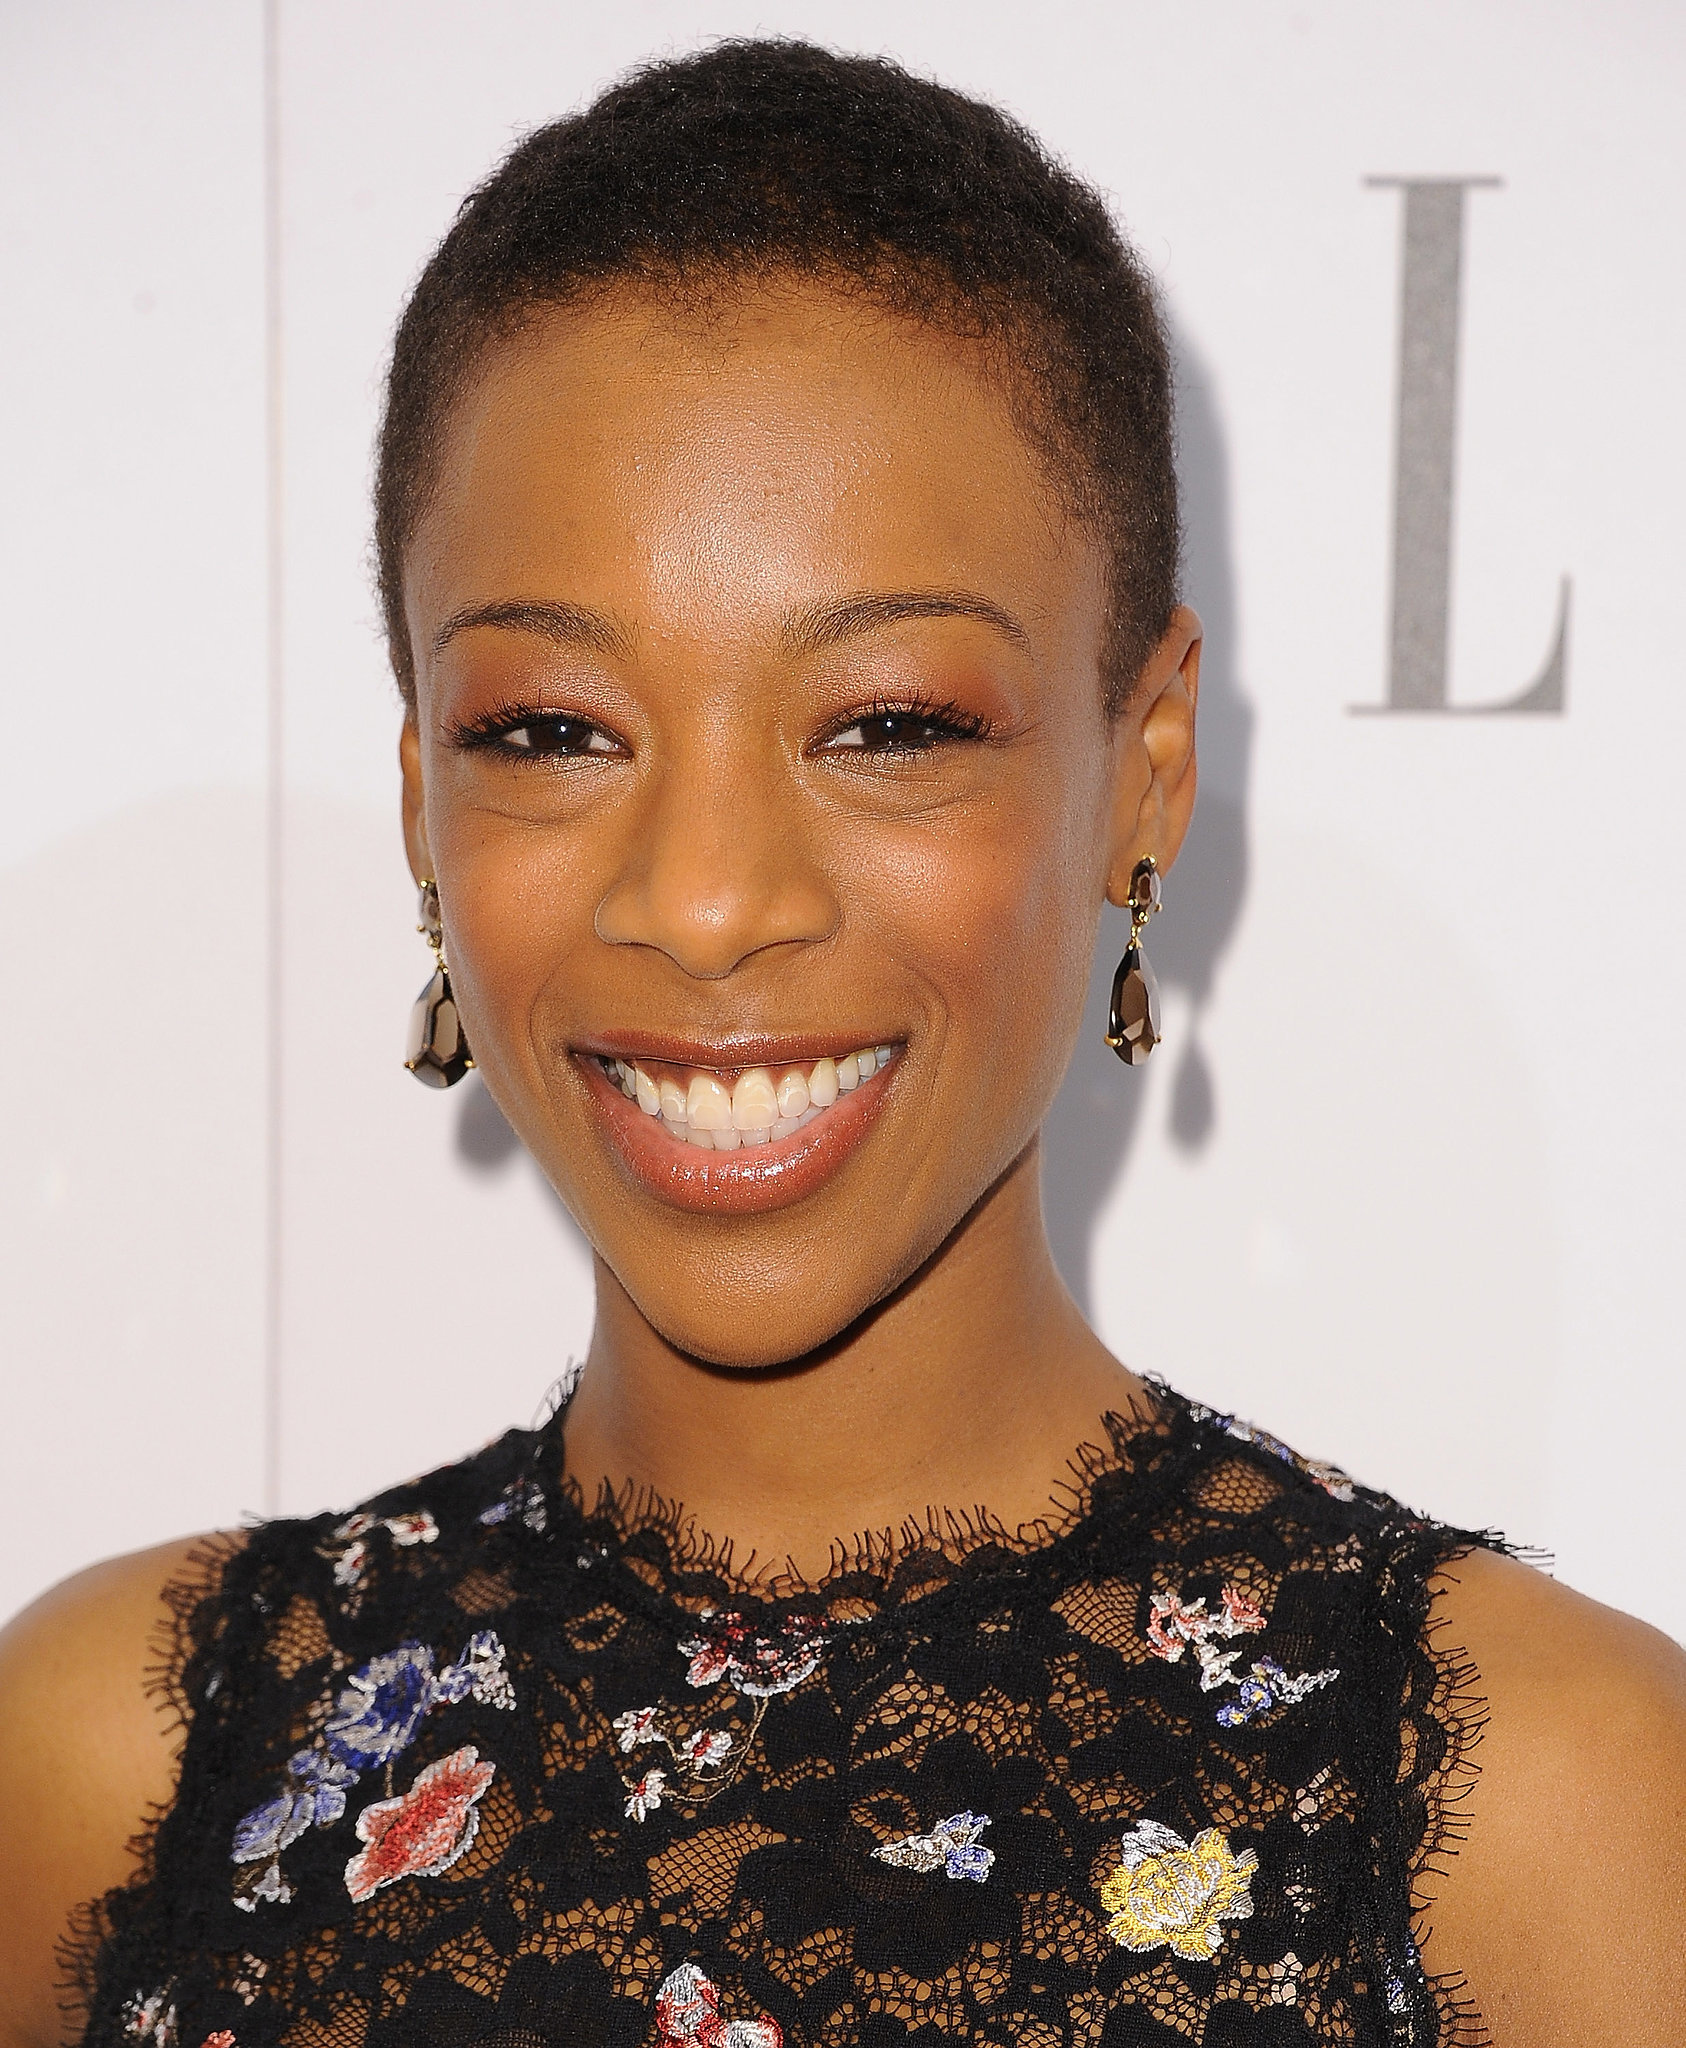 The 30-year old daughter of father Dennis W. Wiley and mother Christine Wiley , 161 cm tall Samira Wiley in 2017 photo